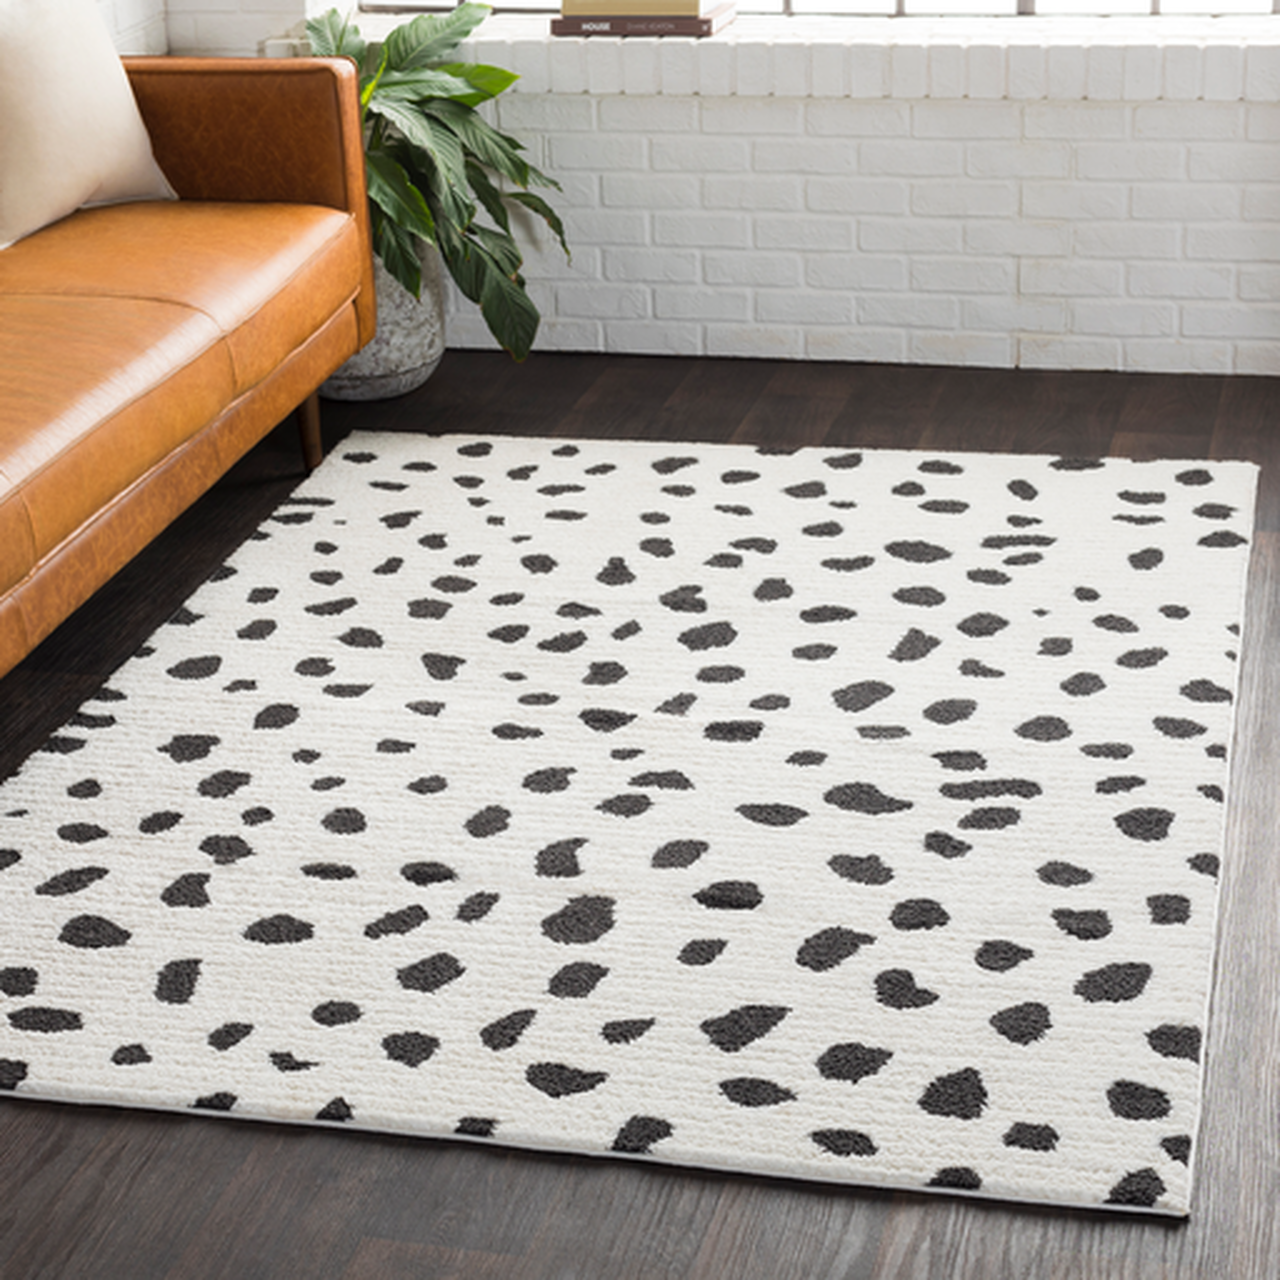 white rug with black Dalmatian spots